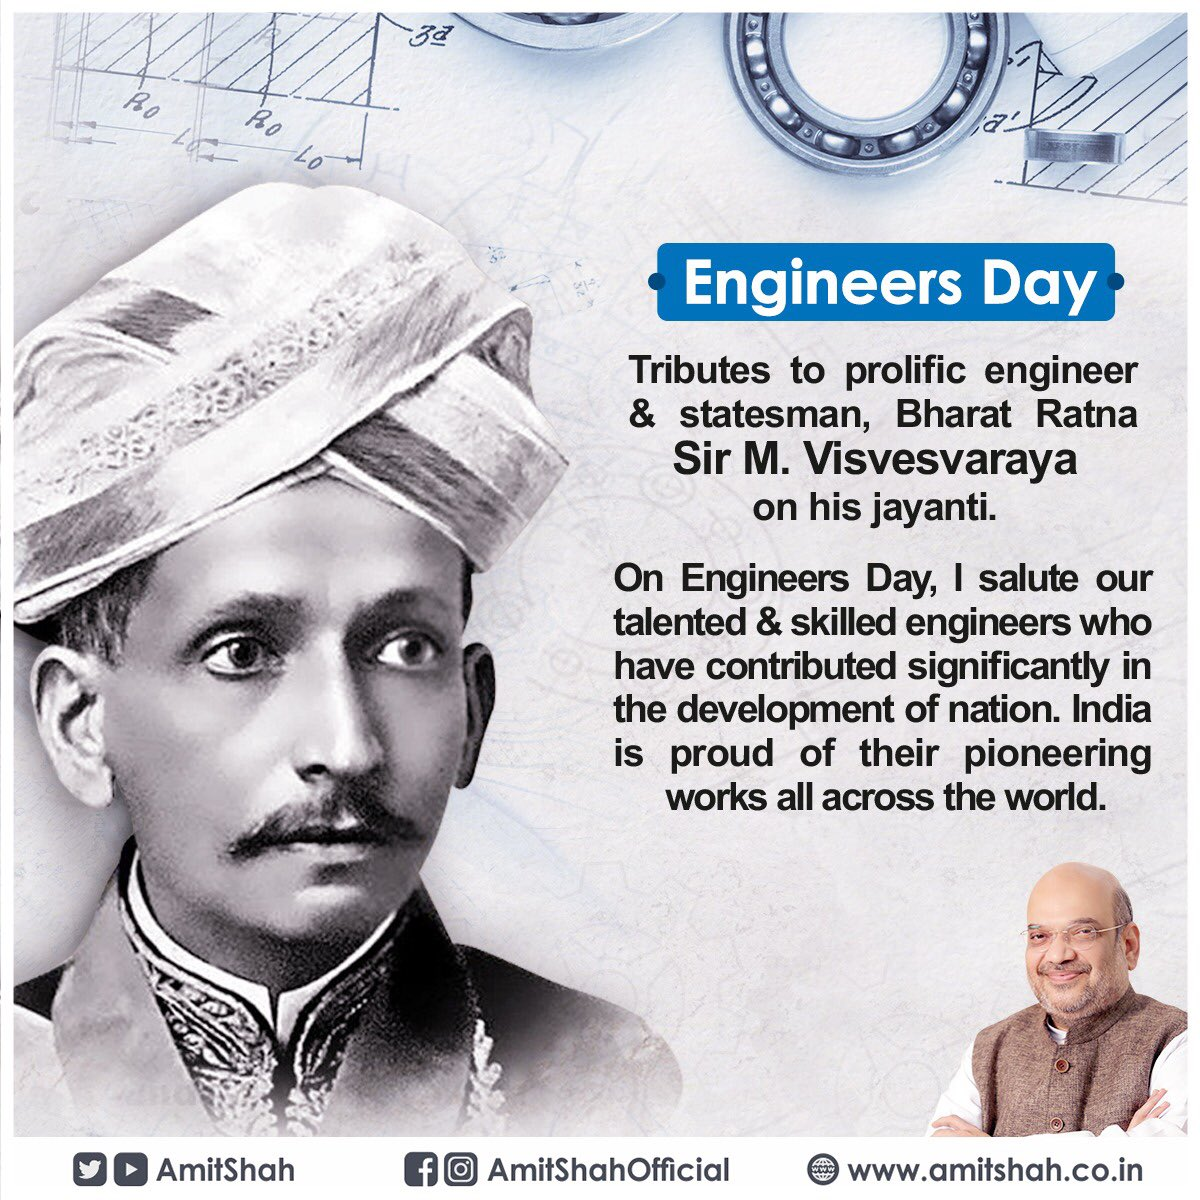 Tributes to prolific engineer & statesman, Bharat Ratna Sir M. Visvesvaraya on his jayanti. On #EngineersDay, I salute our talented & skilled engineers who have contributed significantly in the development of nation. India is proud of their pioneering works all across the world.